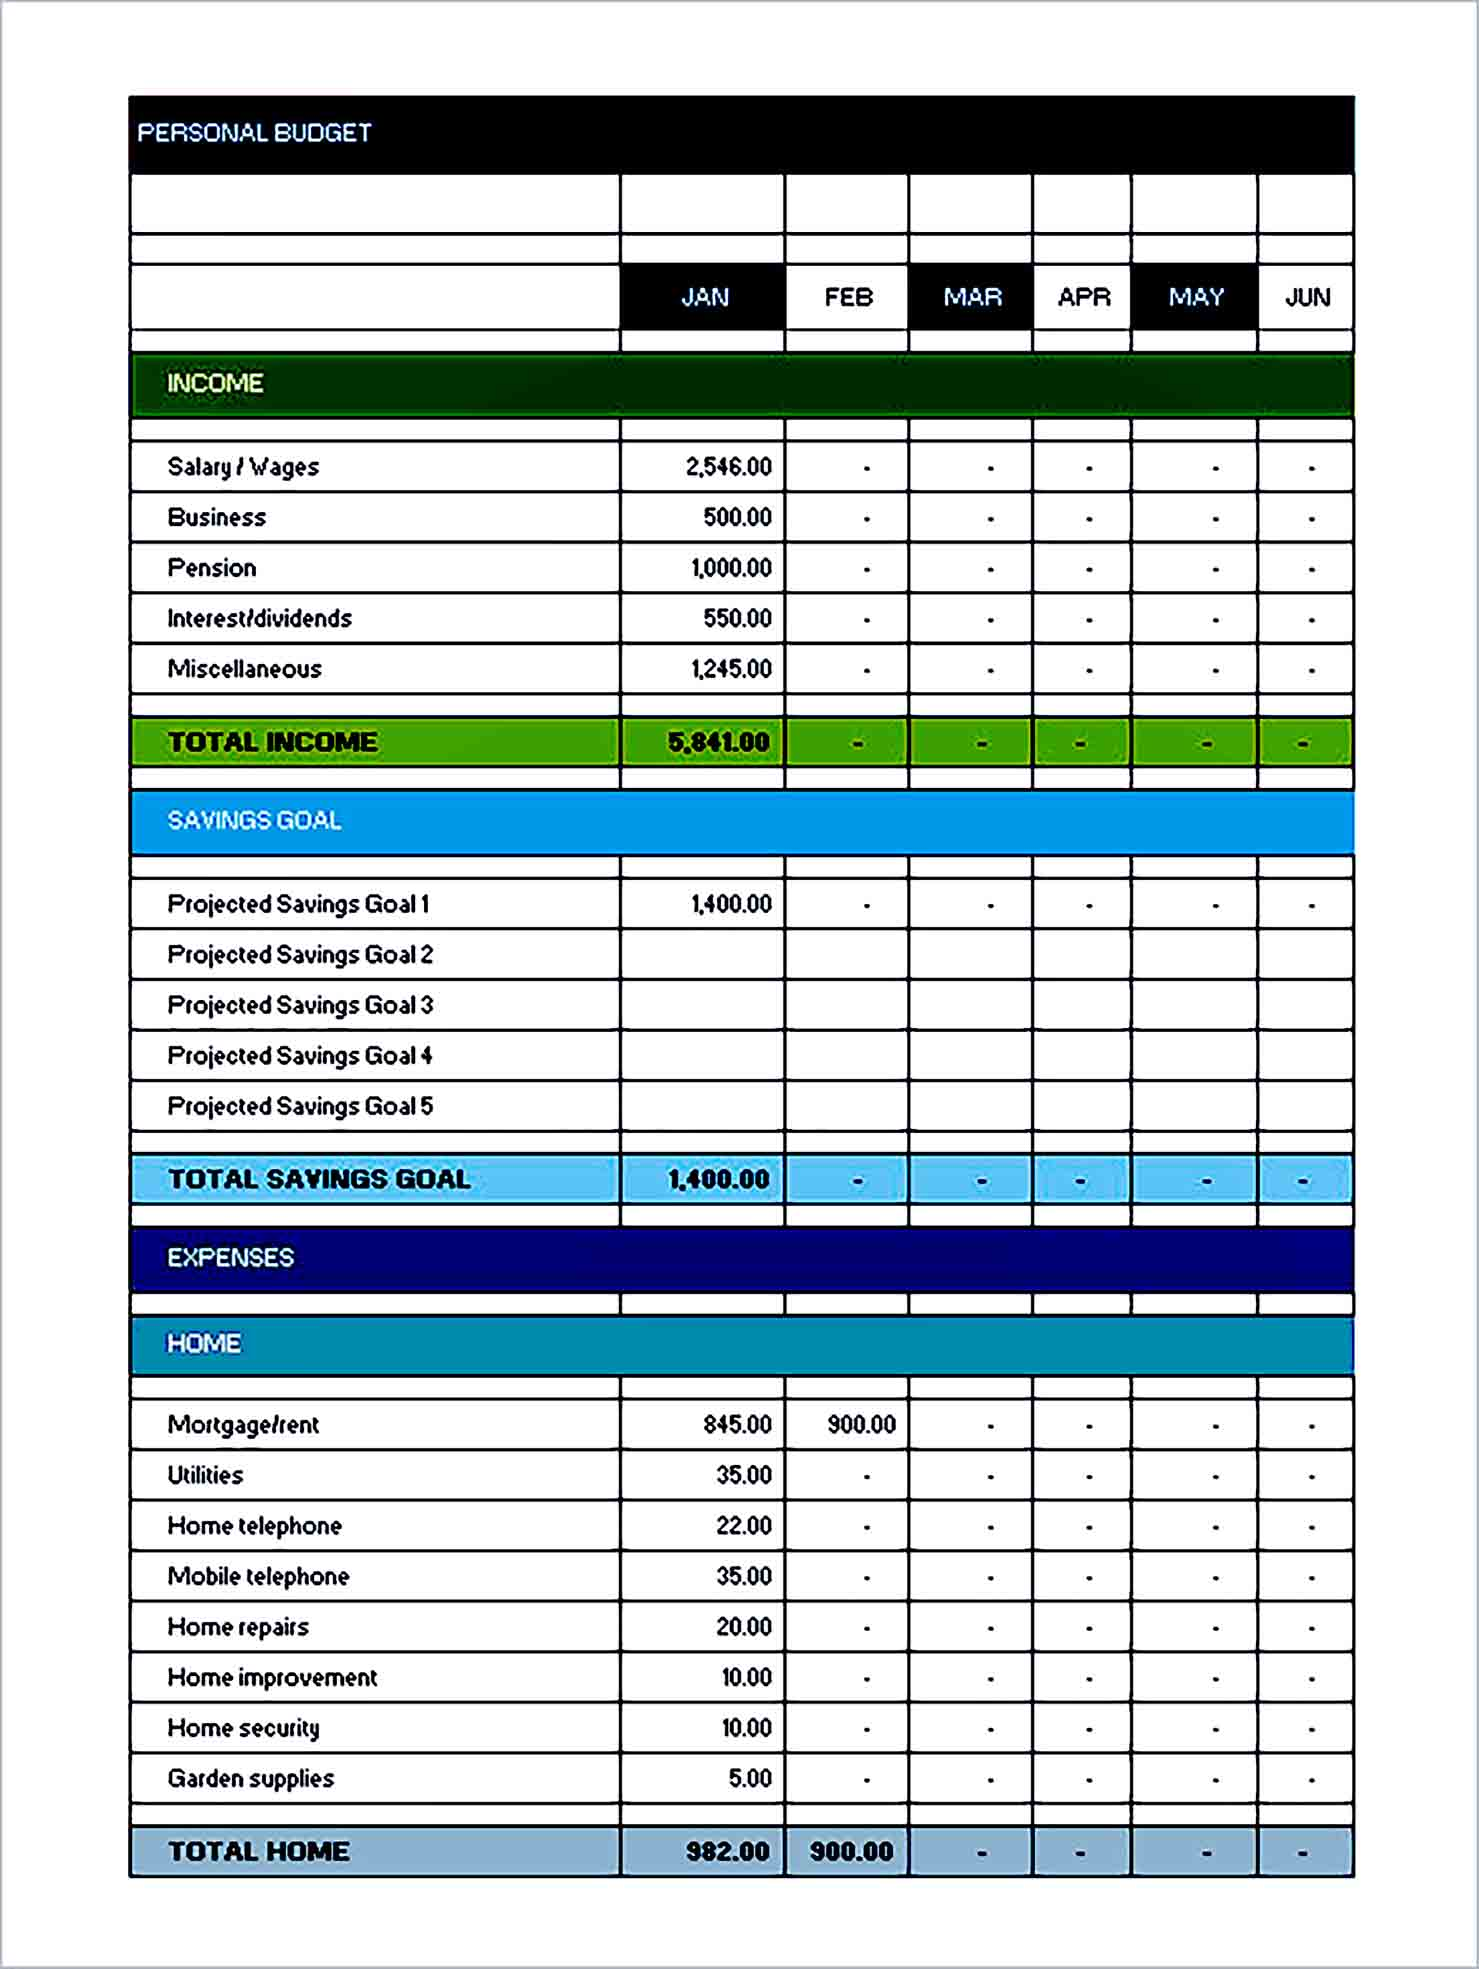 Sample Personal Budget Excel Format